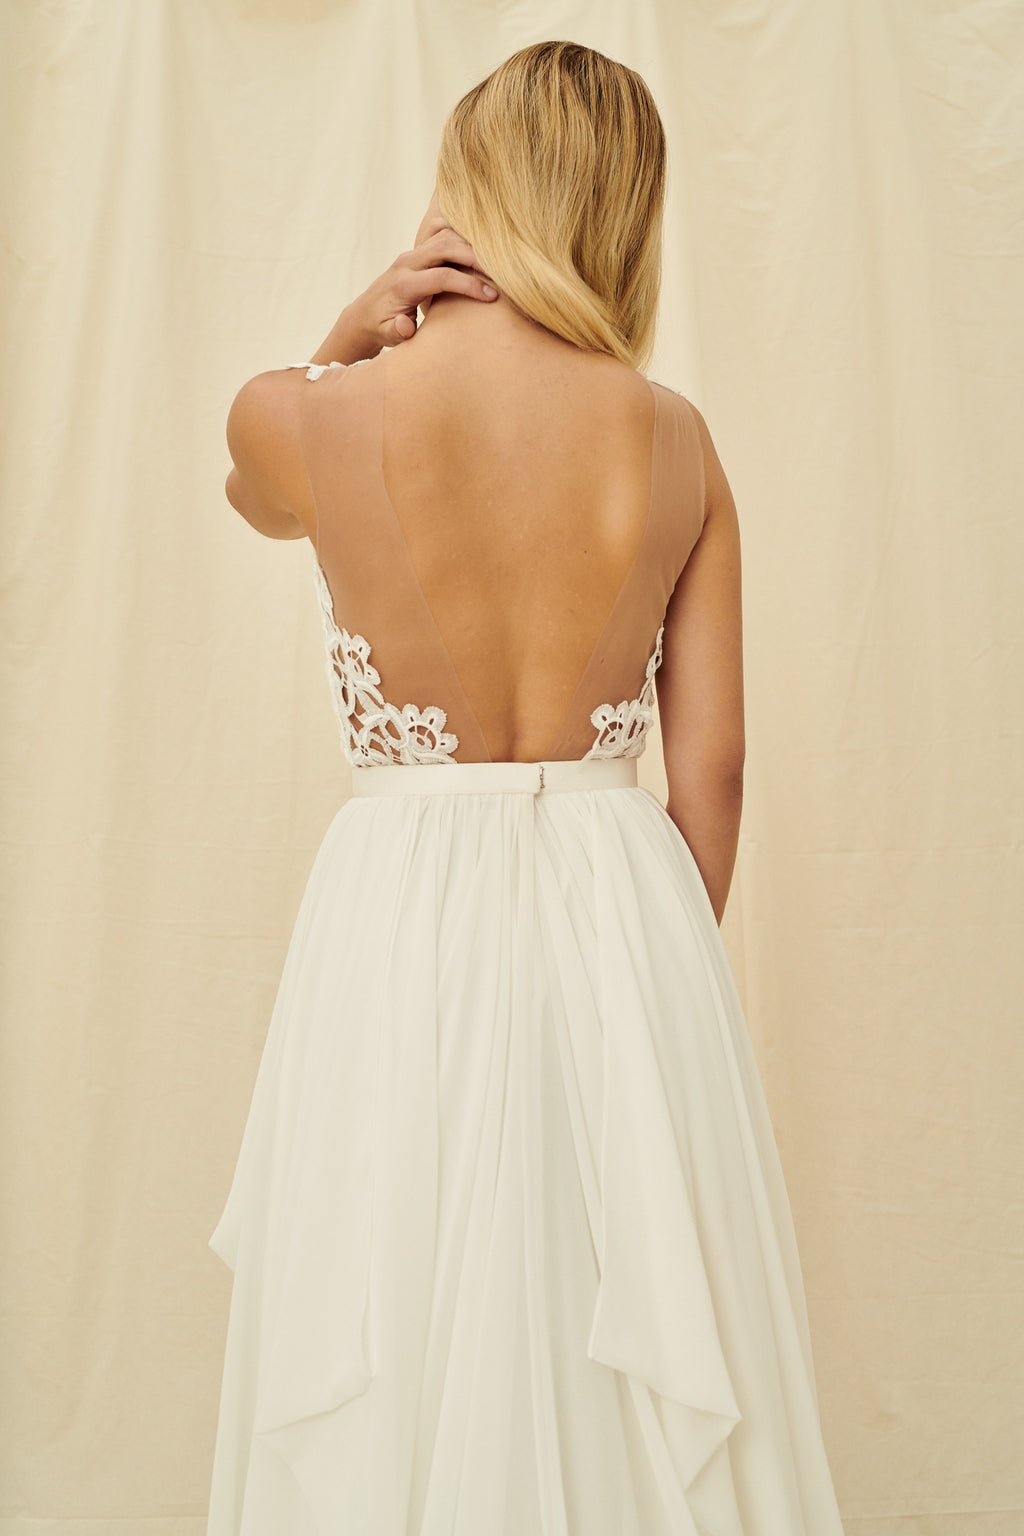 A backless dress with an illusion neckline, modern floral lace, and a pickup skirt